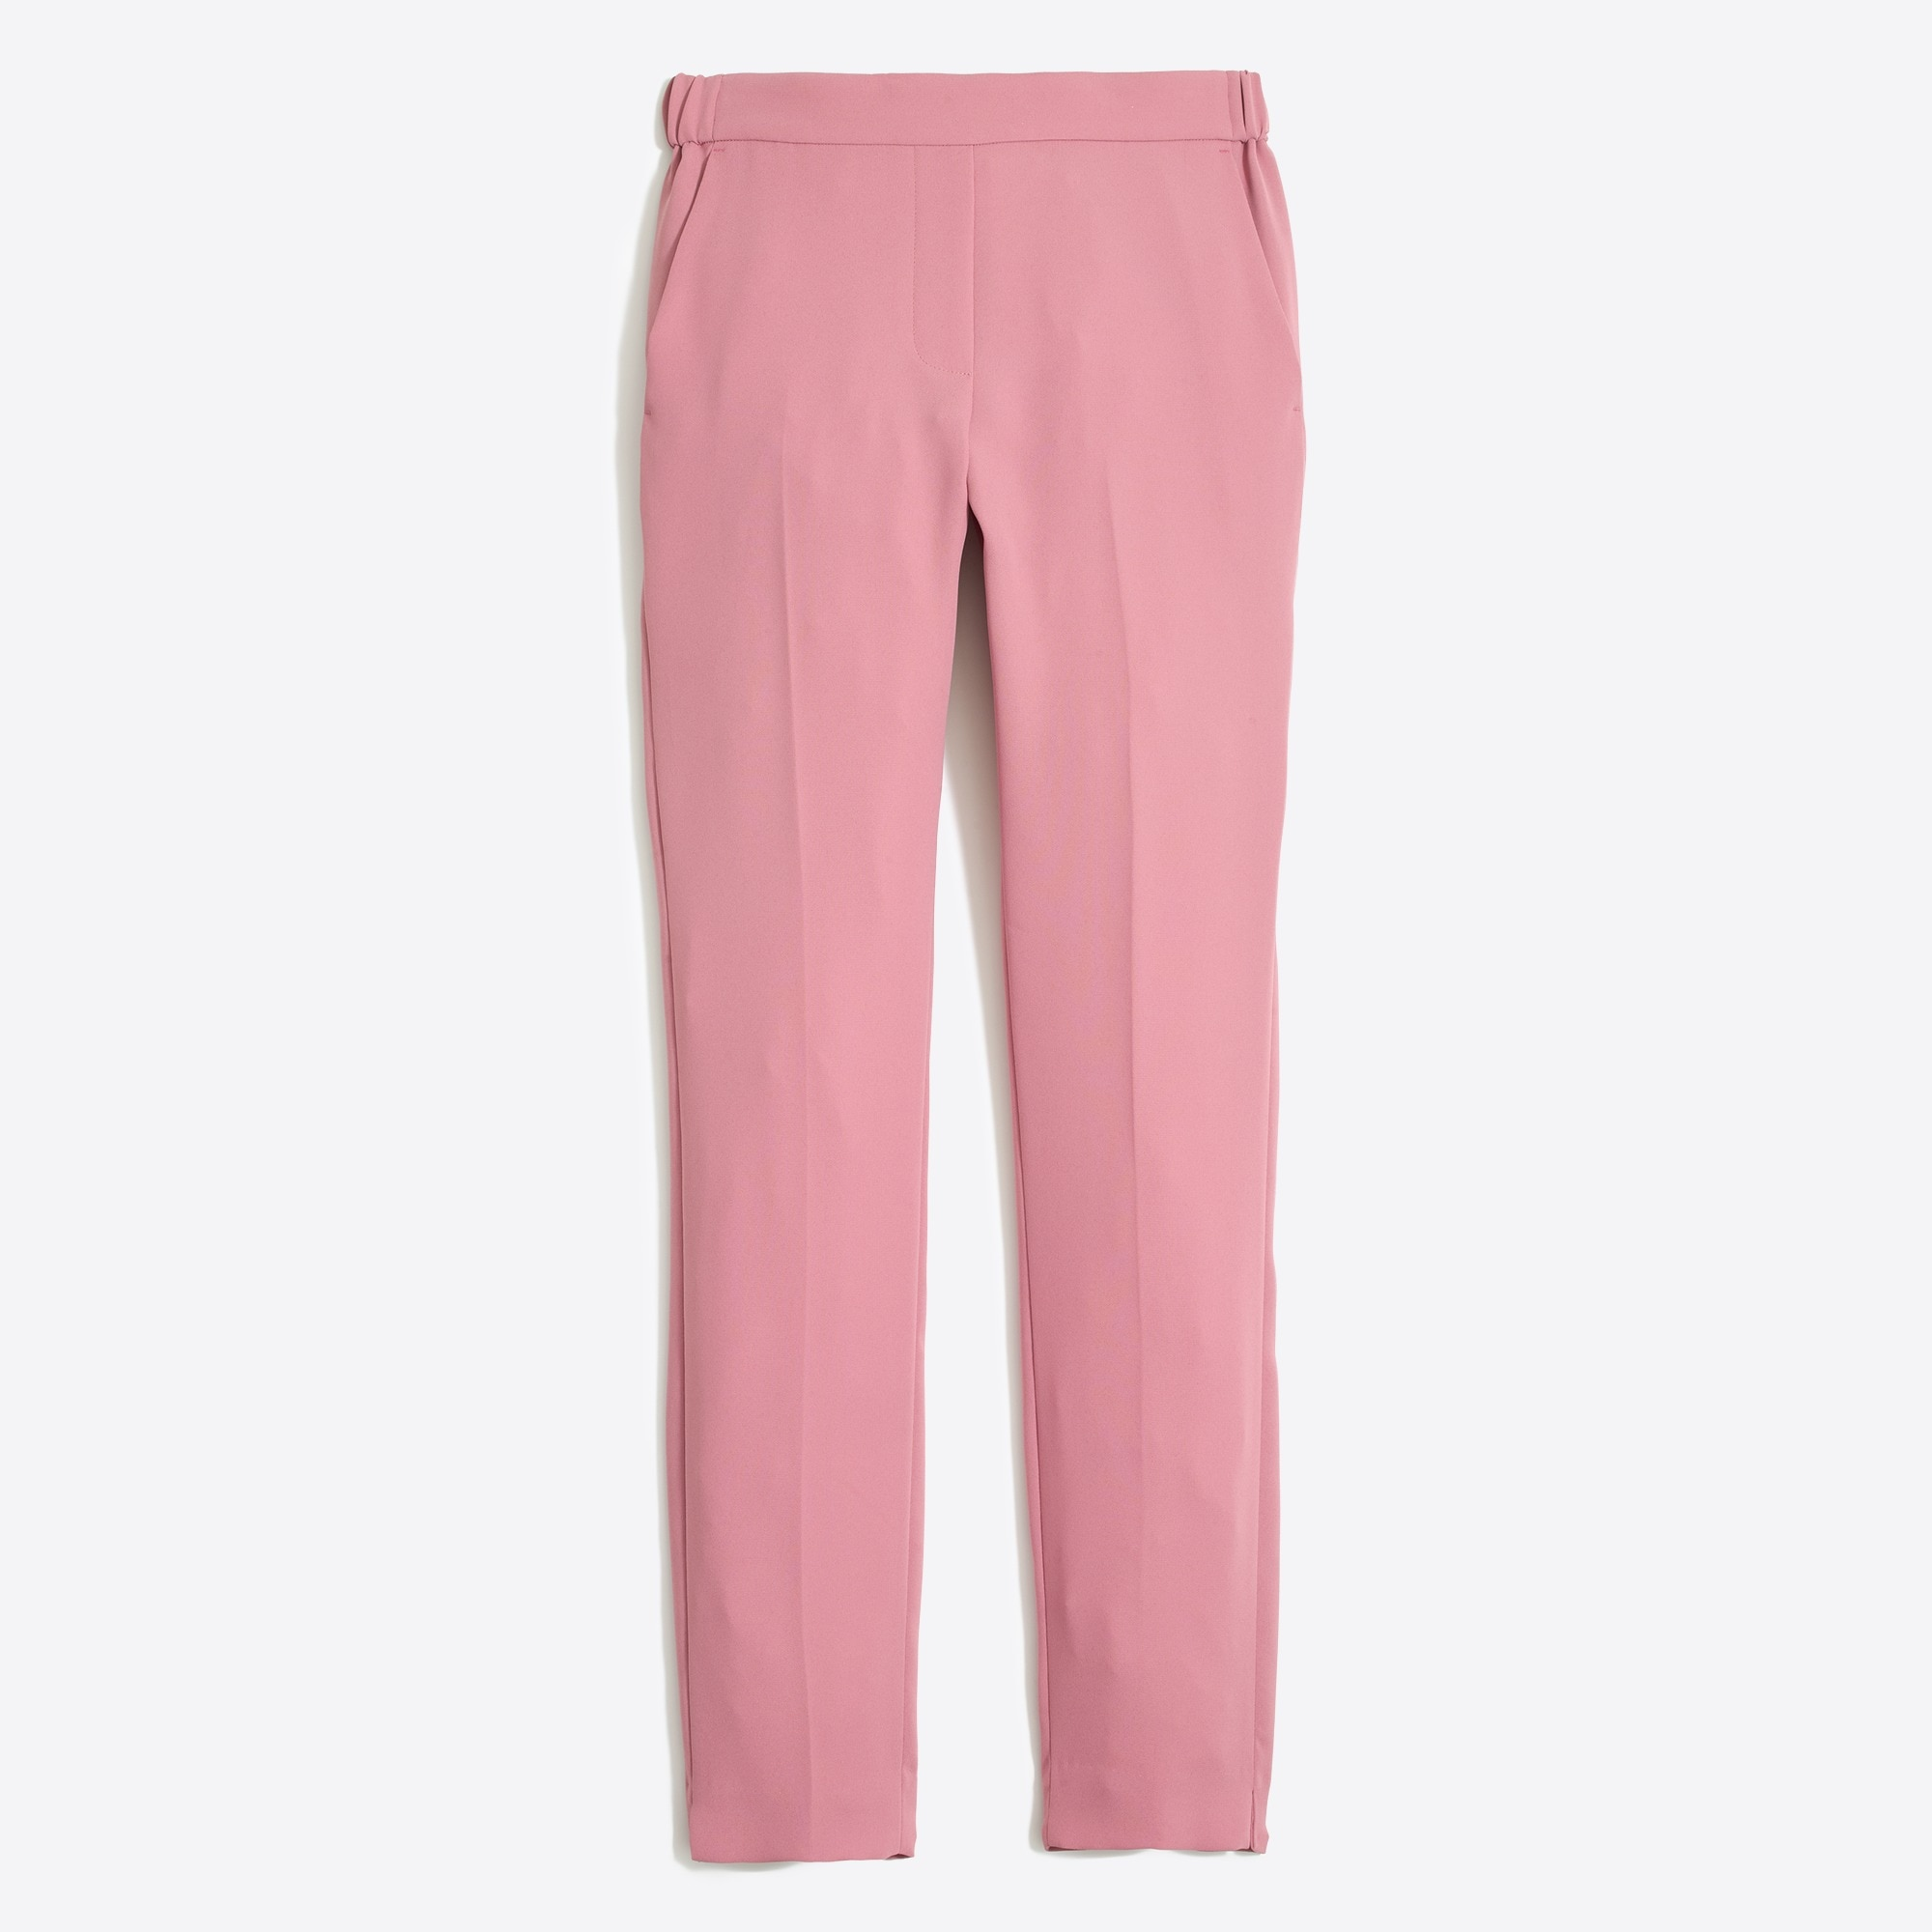 Image 2 for Drapey pull-on pant